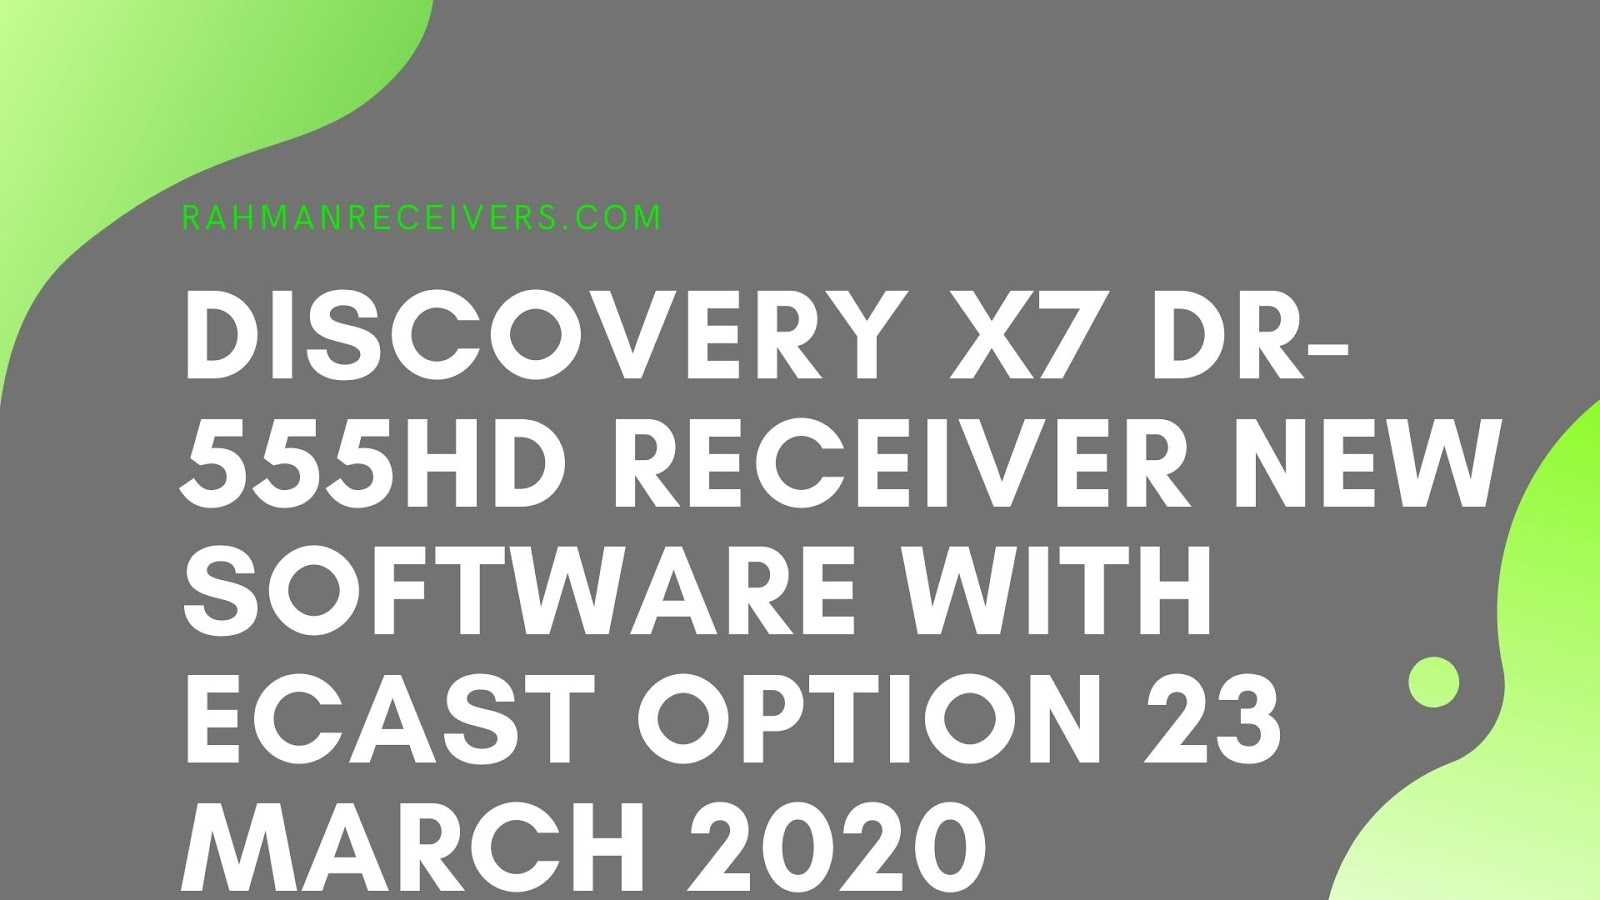 DISCOVERY X7 DR-555HD RECEIVER NEW SOFTWARE WITH ECAST OPTION 23 MARCH 2020